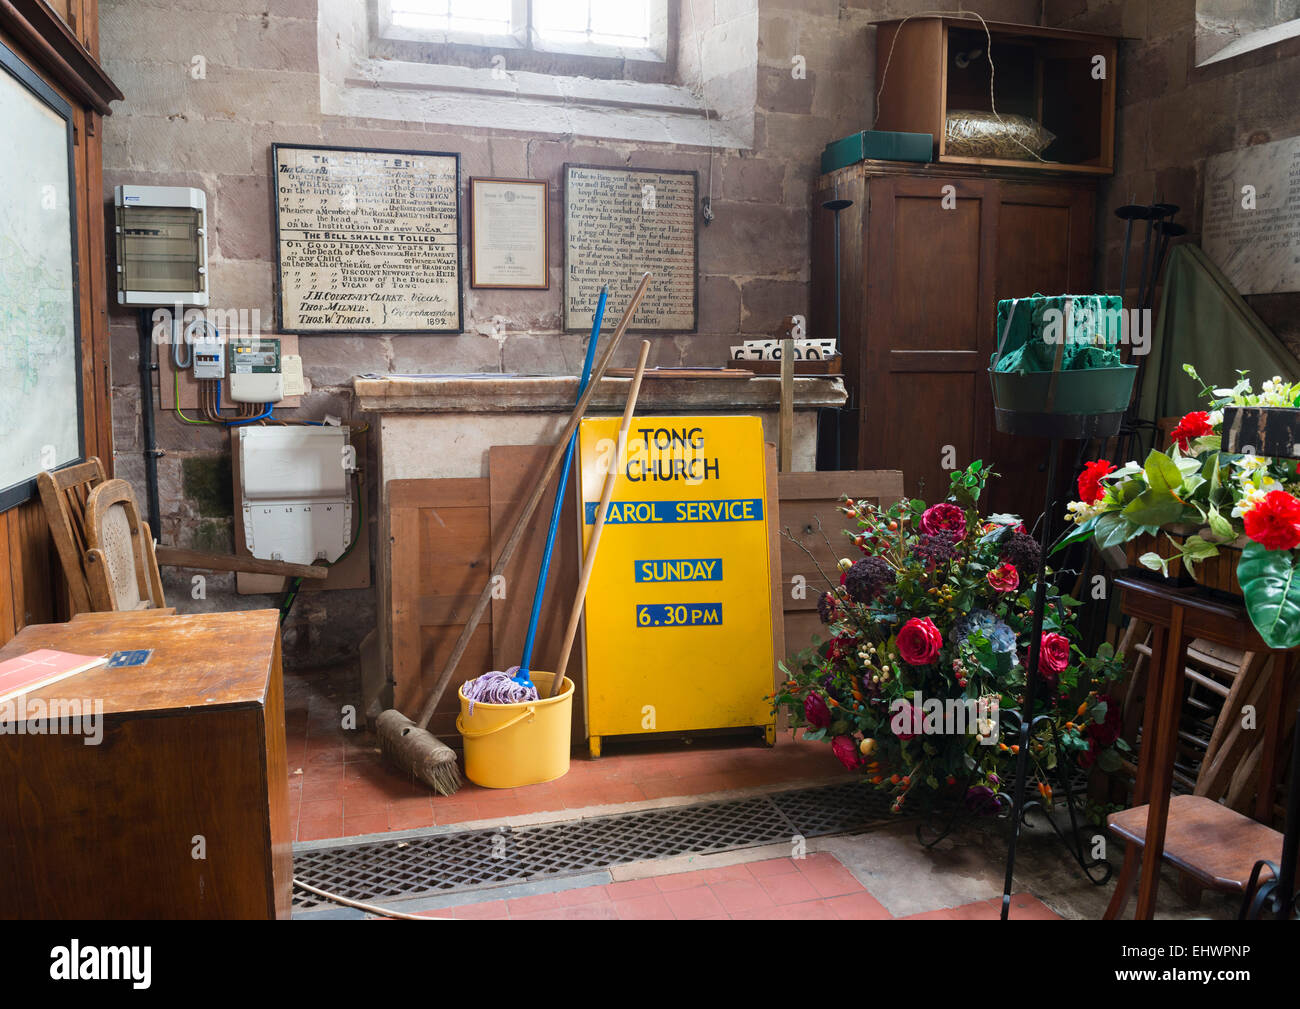 Behind the scenes in St Bartholomew's Church, Tong, Shropshire, England. - Stock Image